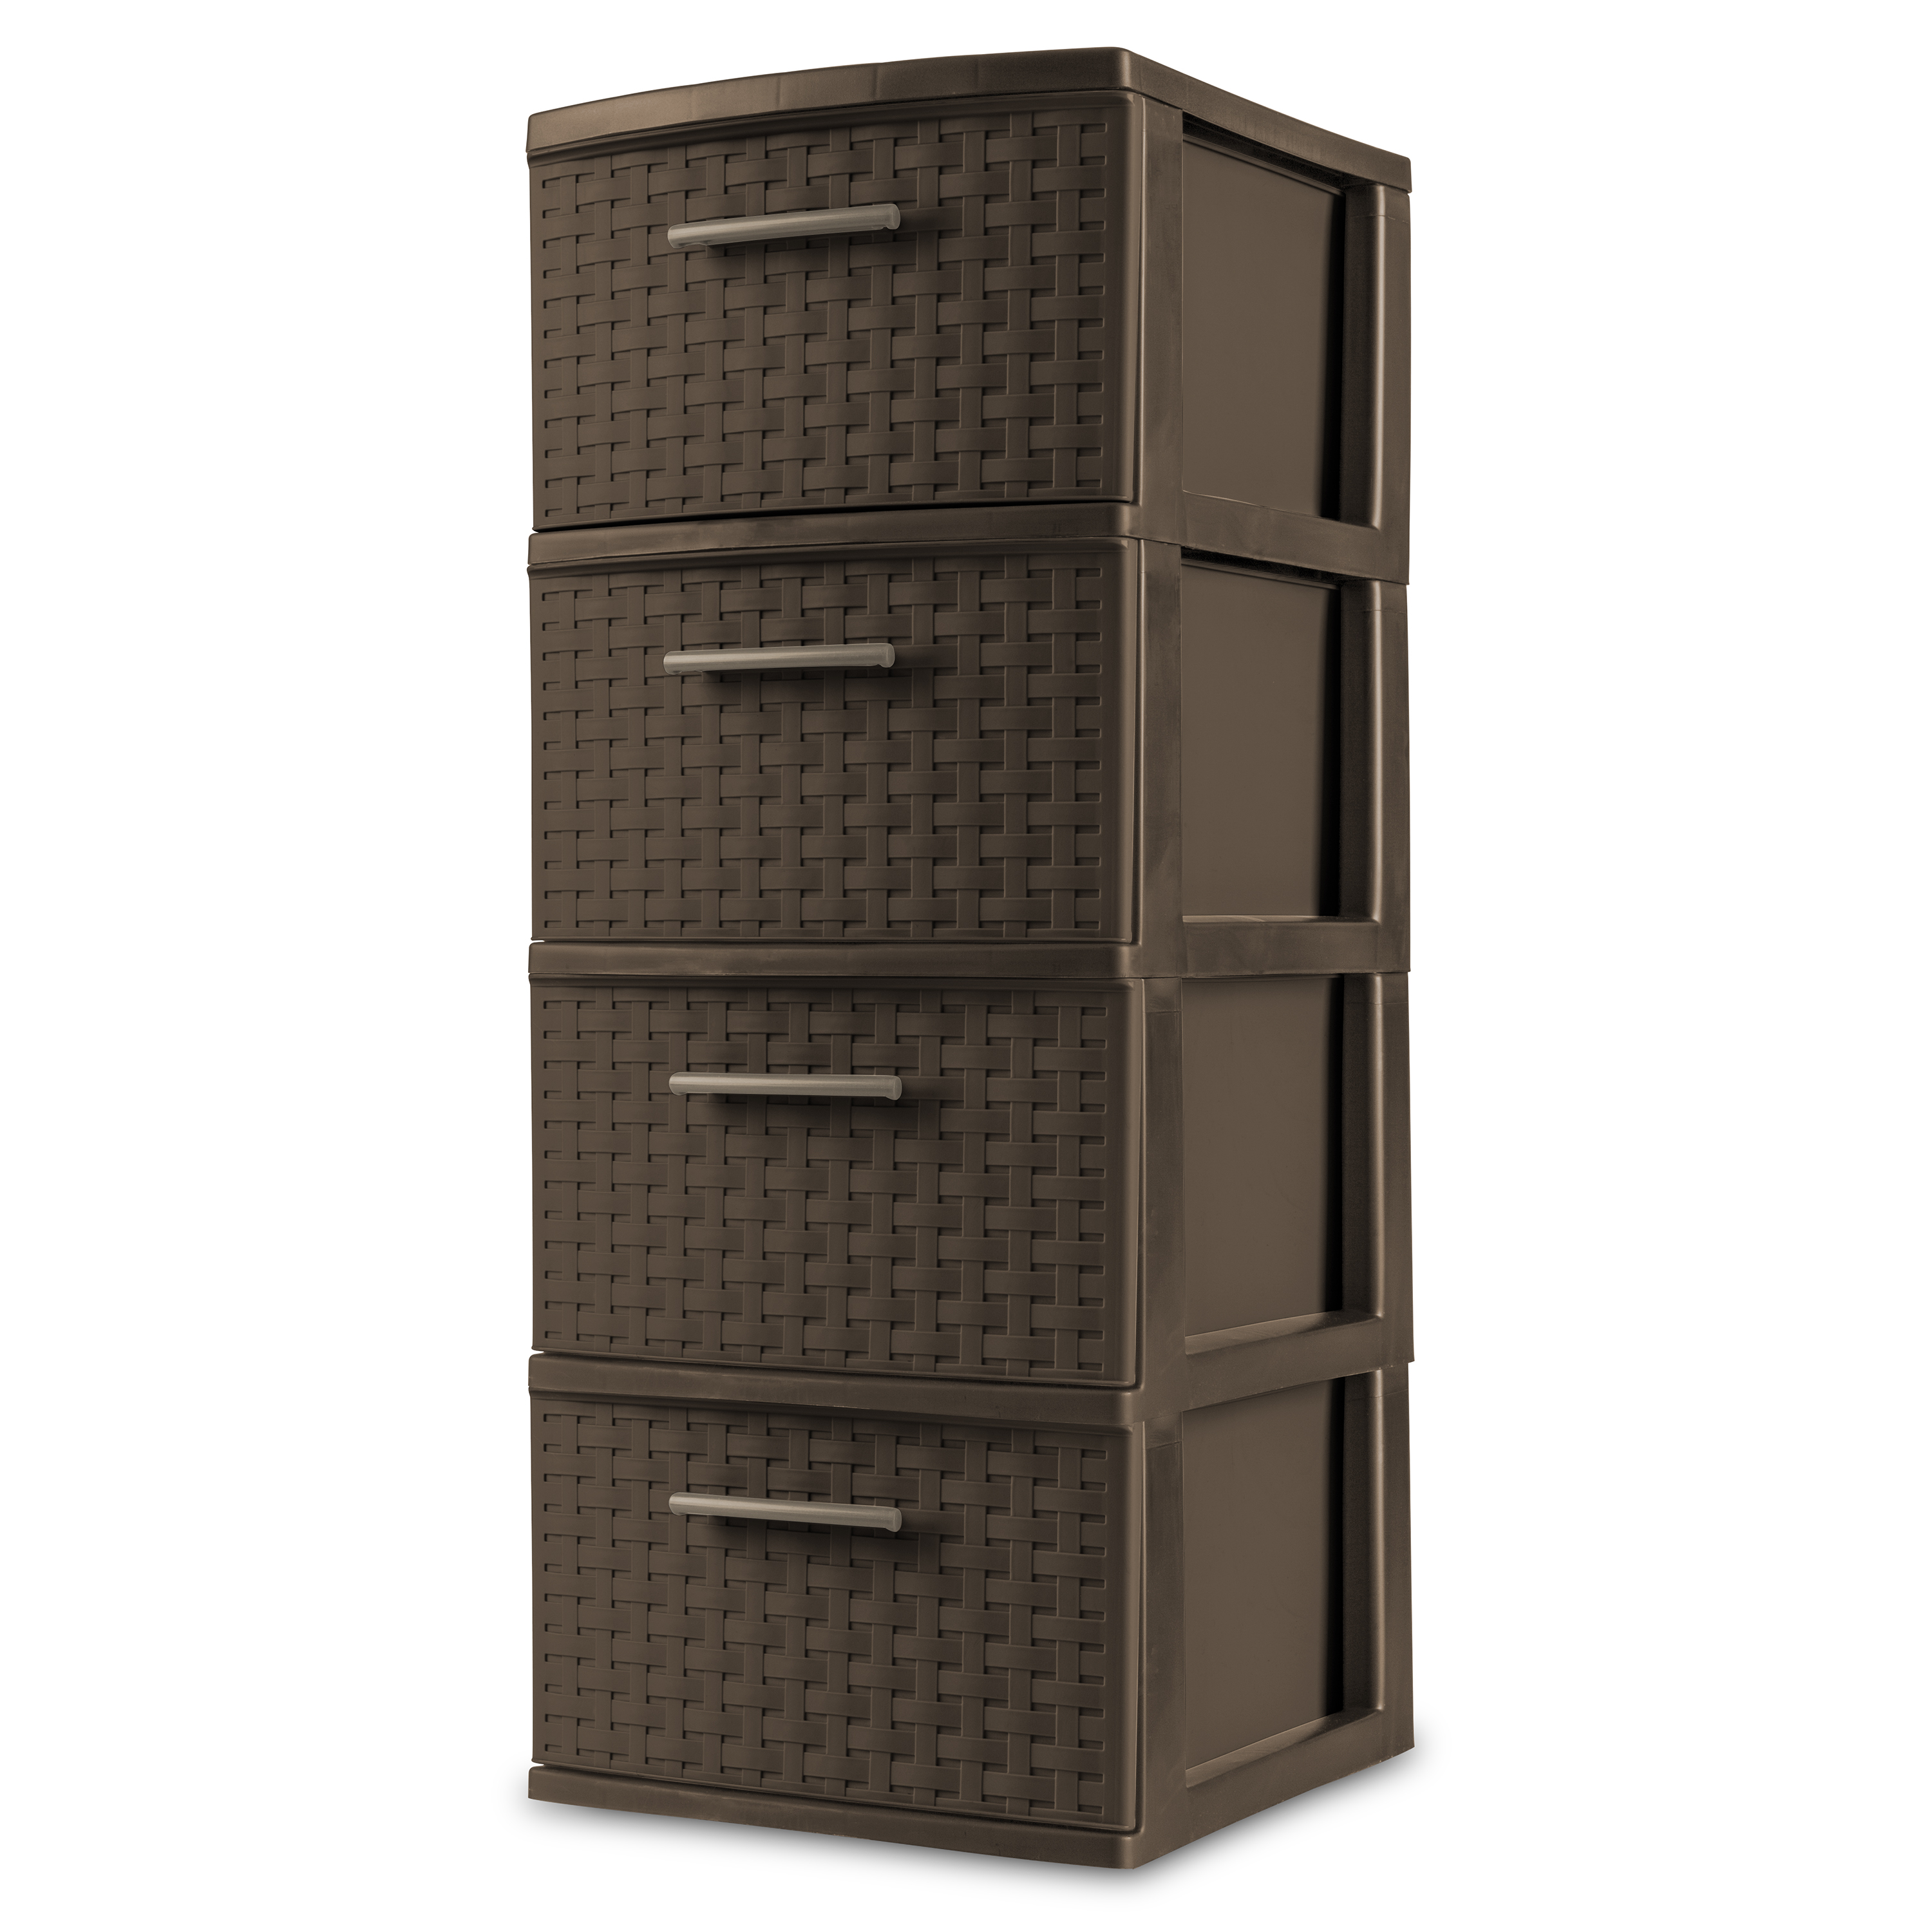 Sterilite 4 Drawer Weave Tower, Espresso